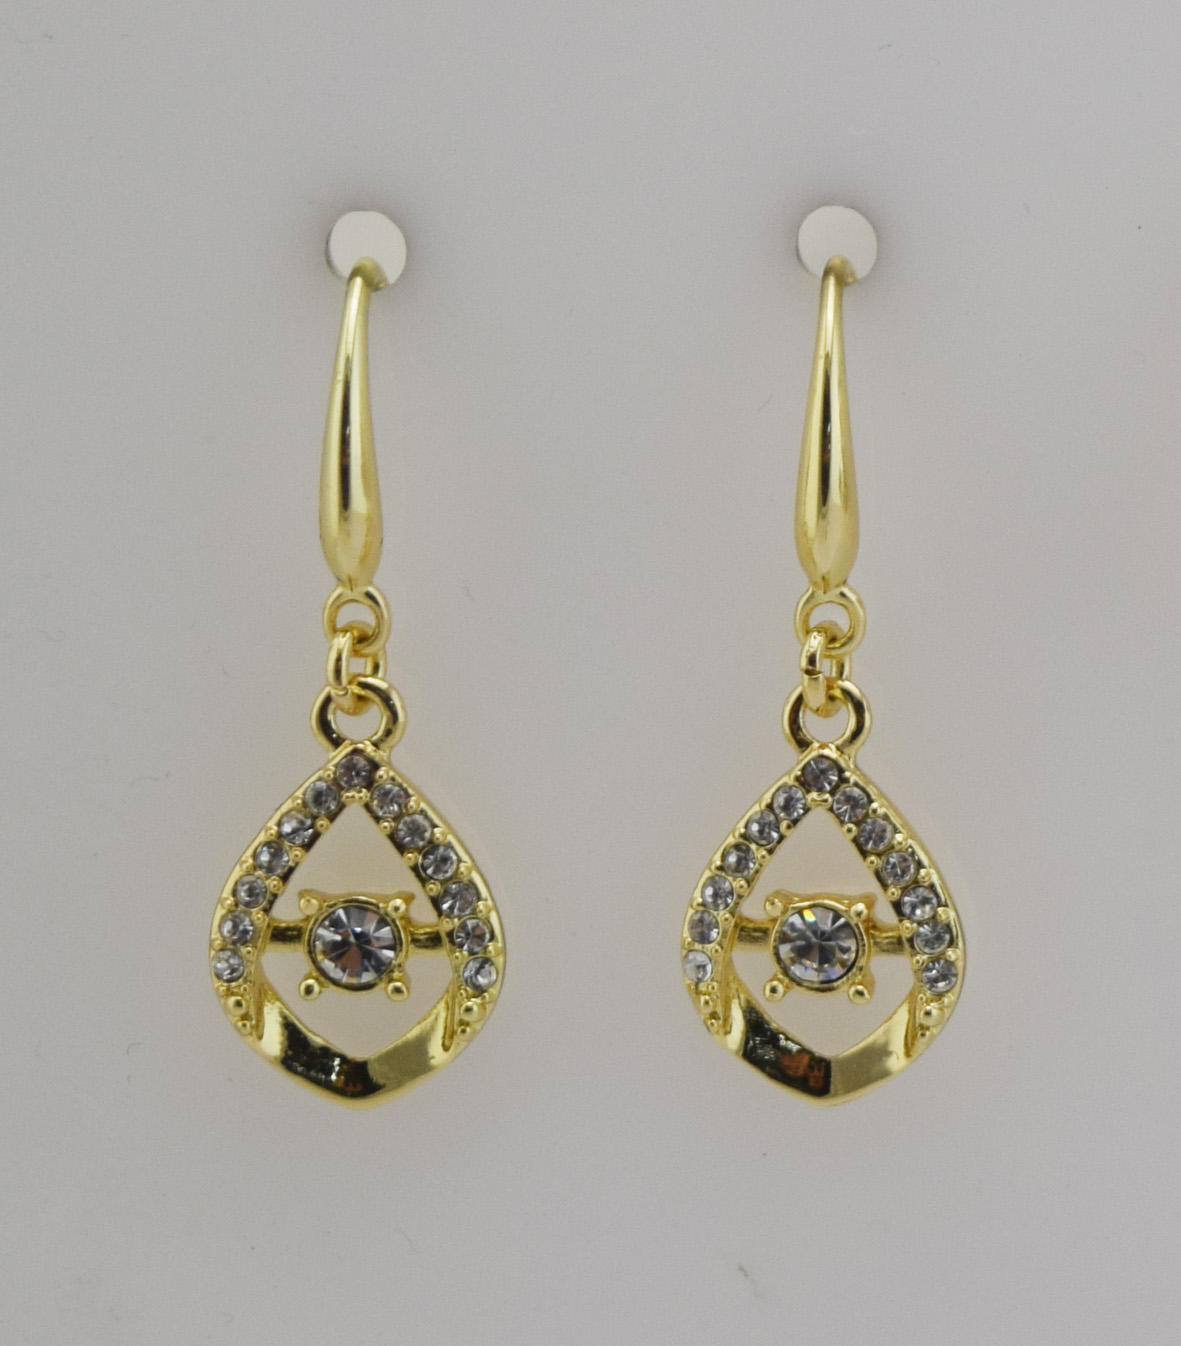 Zinc alloy fishhook earrings